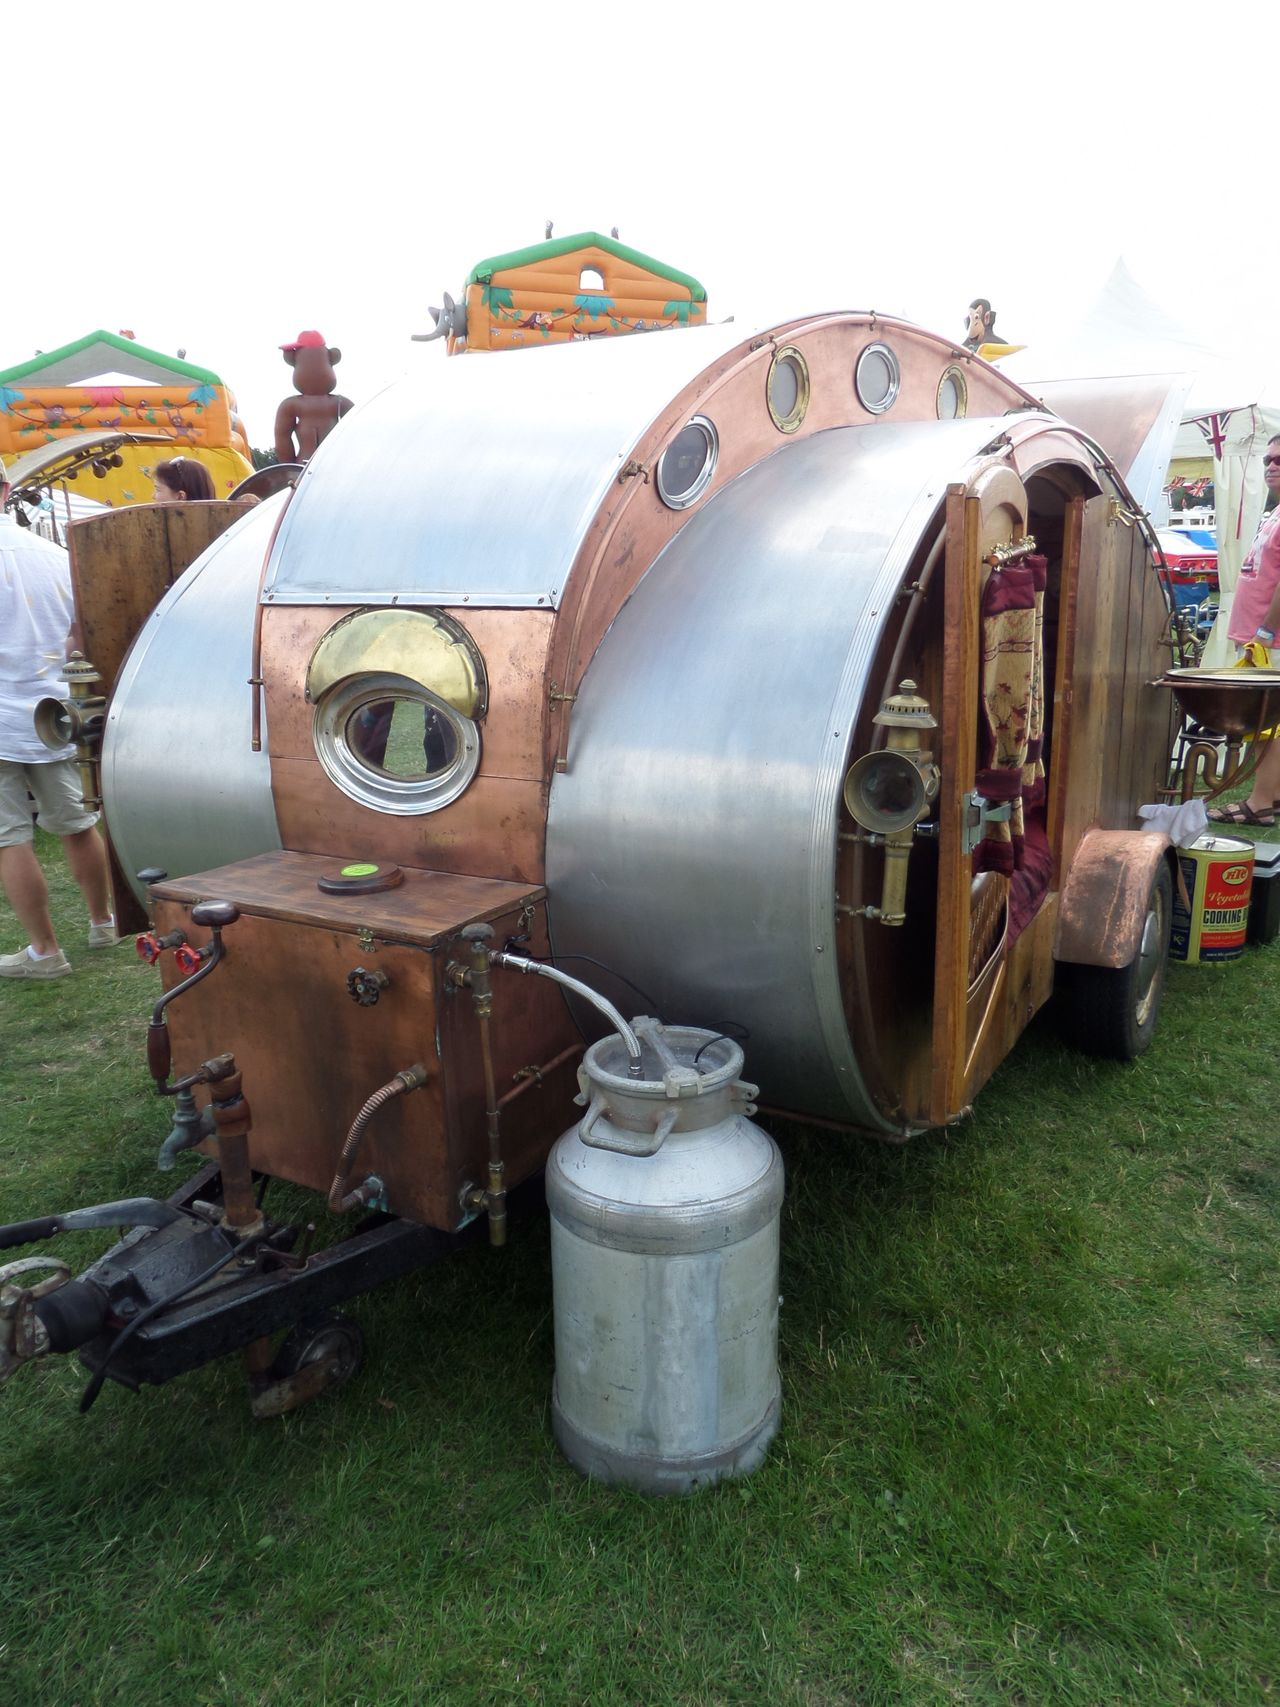 Q. Quirky. Field Grass Land Vehicle Mode Of Transport No People Old Old-fashioned Q Quirky Stationary Transportation